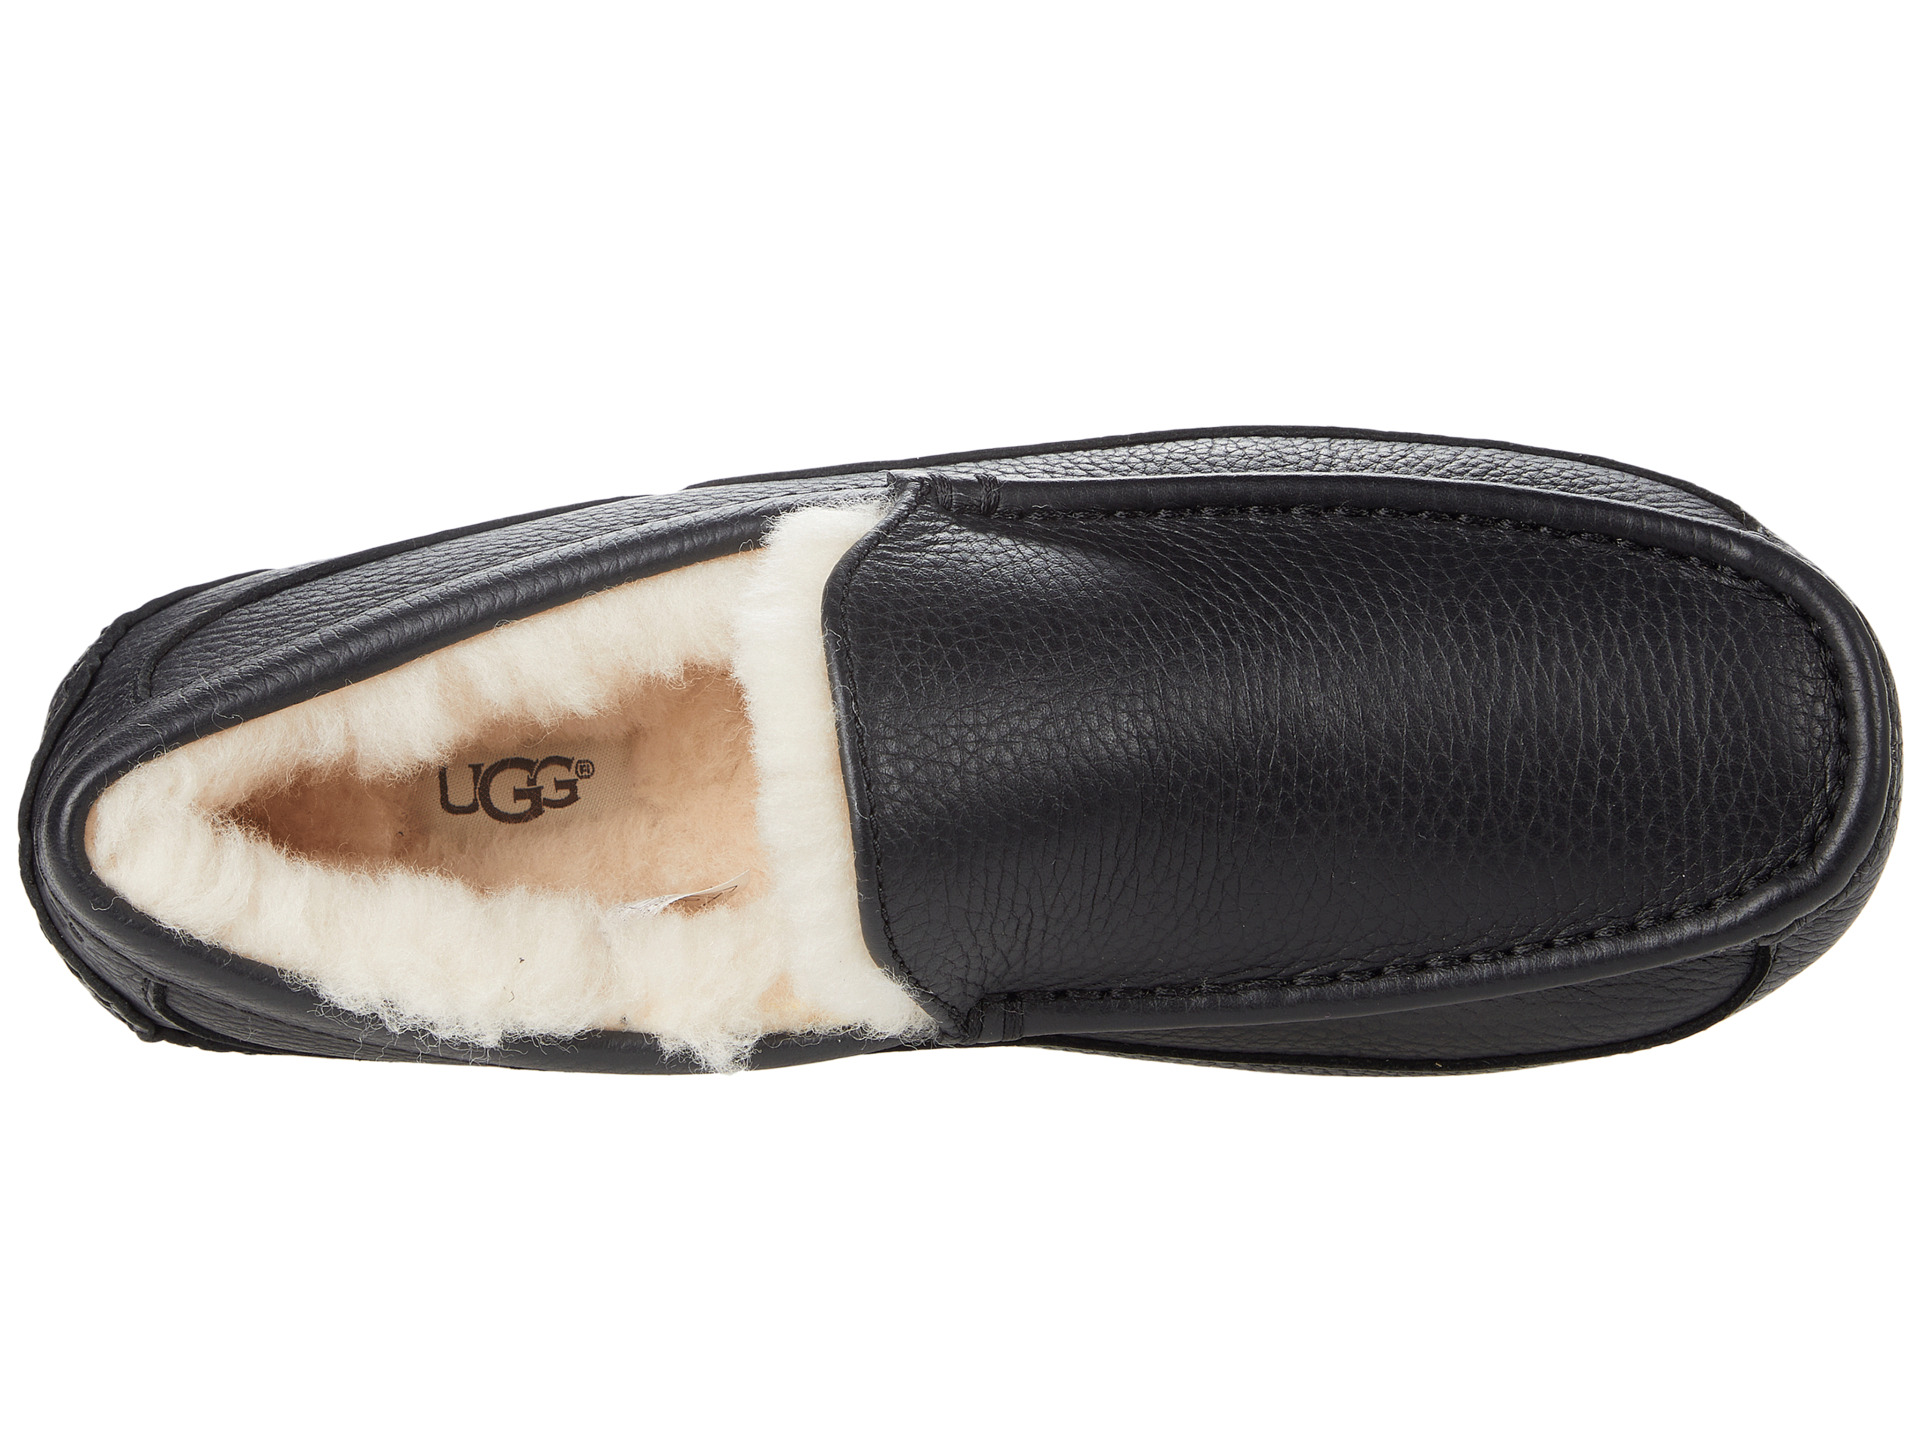 Fake ugg dakota pantoufles